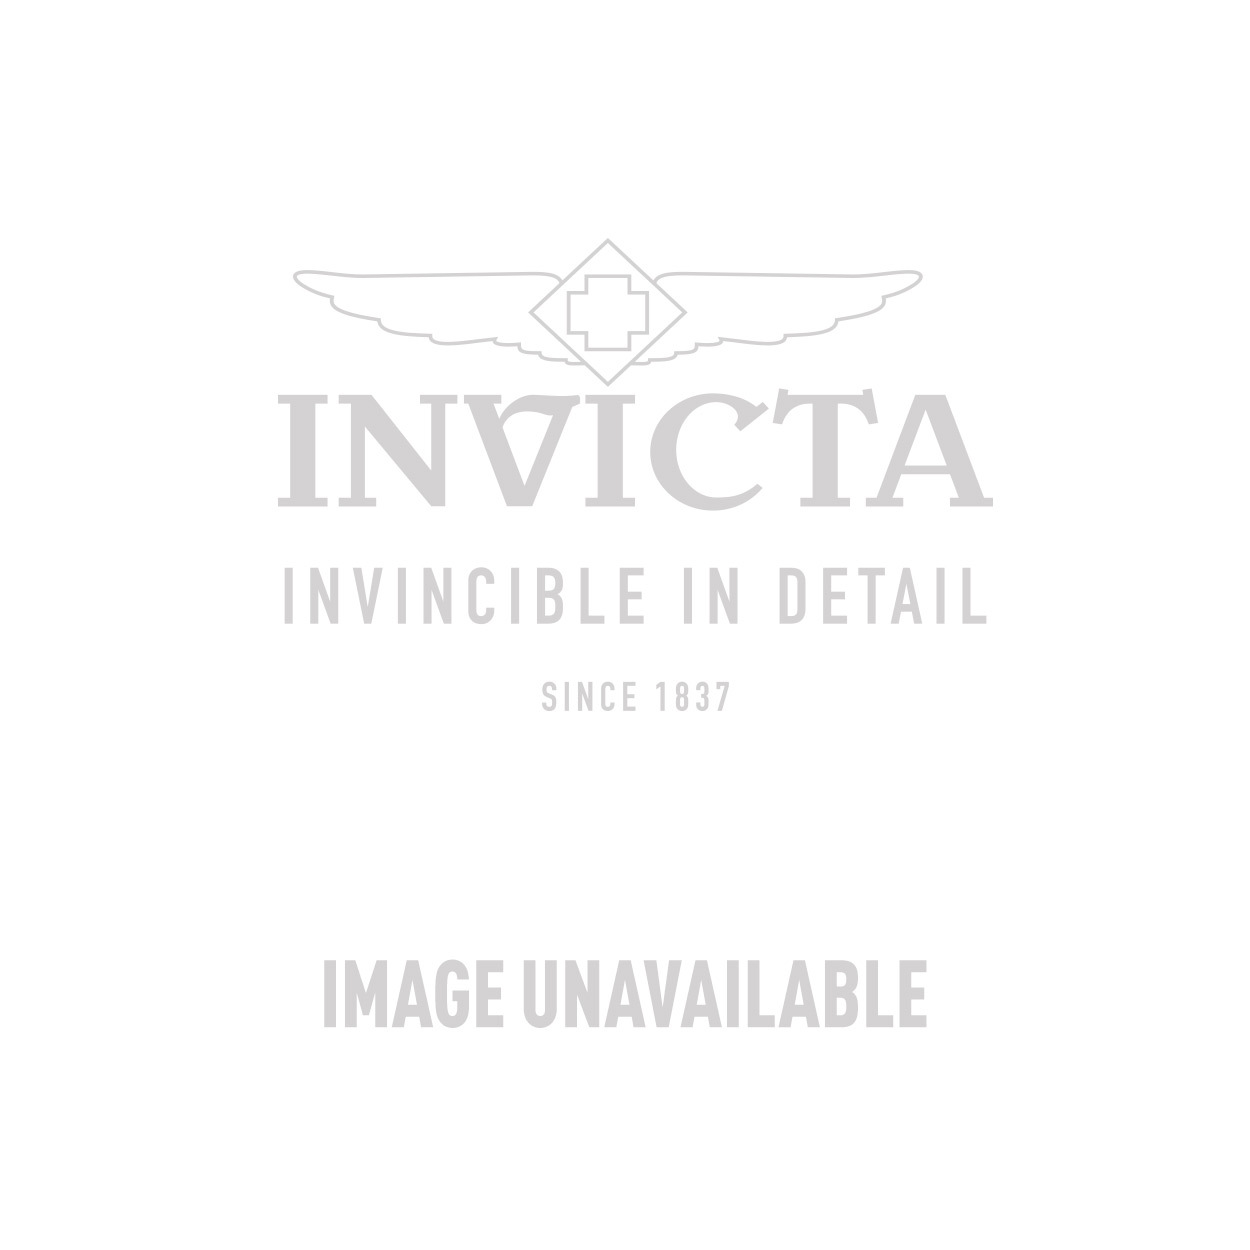 Invicta Bolt Swiss Made Quartz Watch - Black, Stainless Steel case with Grey tone Silicone band - Model 90002